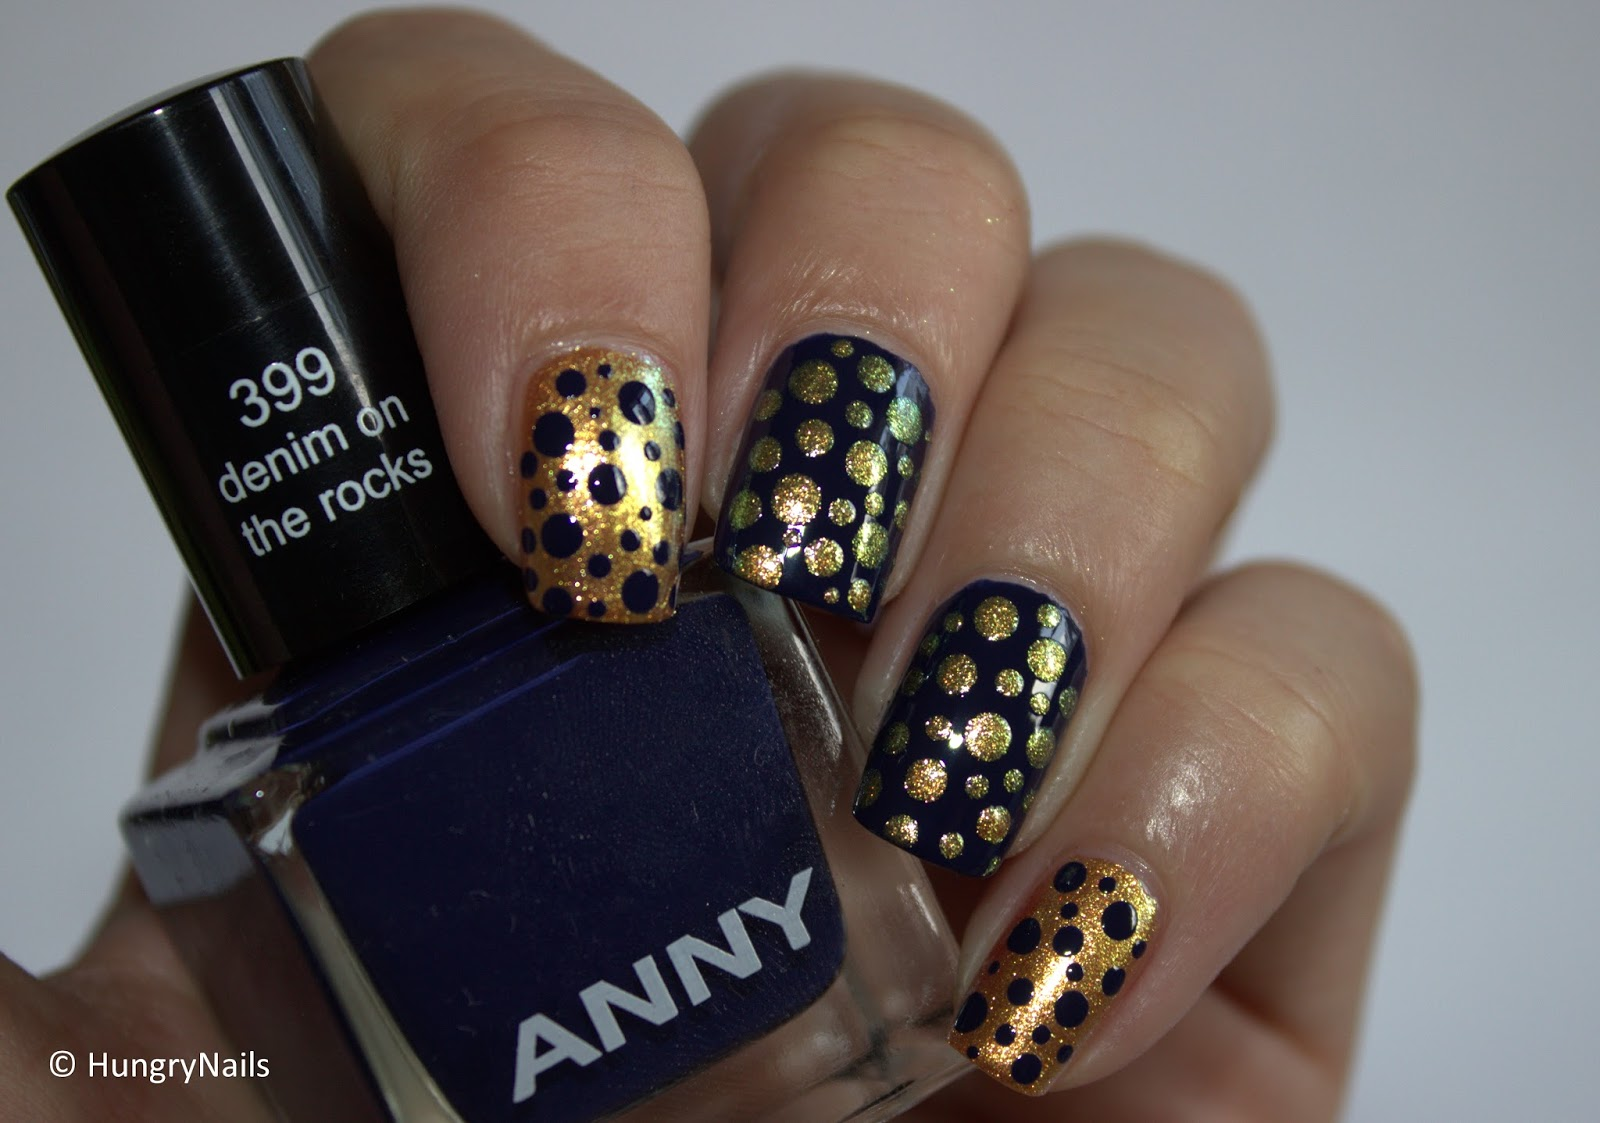 http://hungrynails.blogspot.de/2014/05/girls-wanna-have-fun-with-anny.html